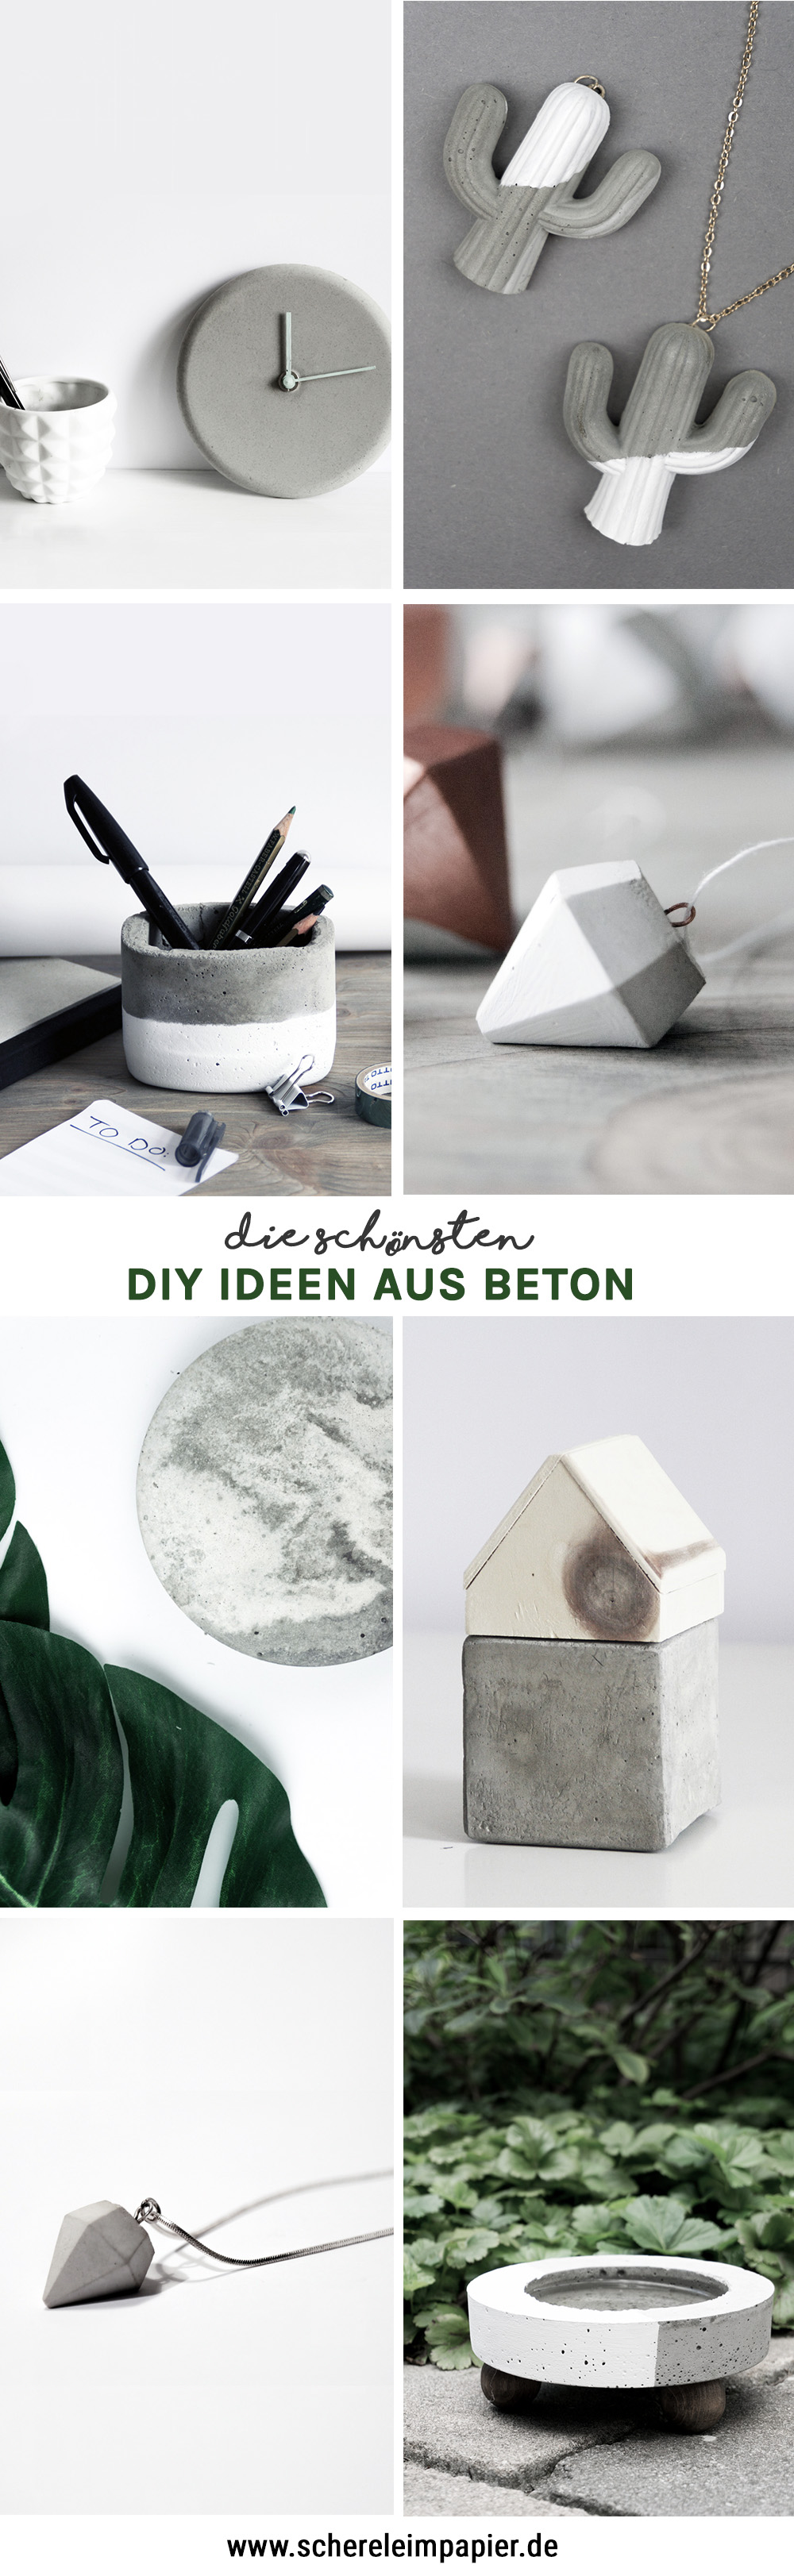 diy beton schereleimpapier diy blog f r wohnen geschenke und mehr. Black Bedroom Furniture Sets. Home Design Ideas